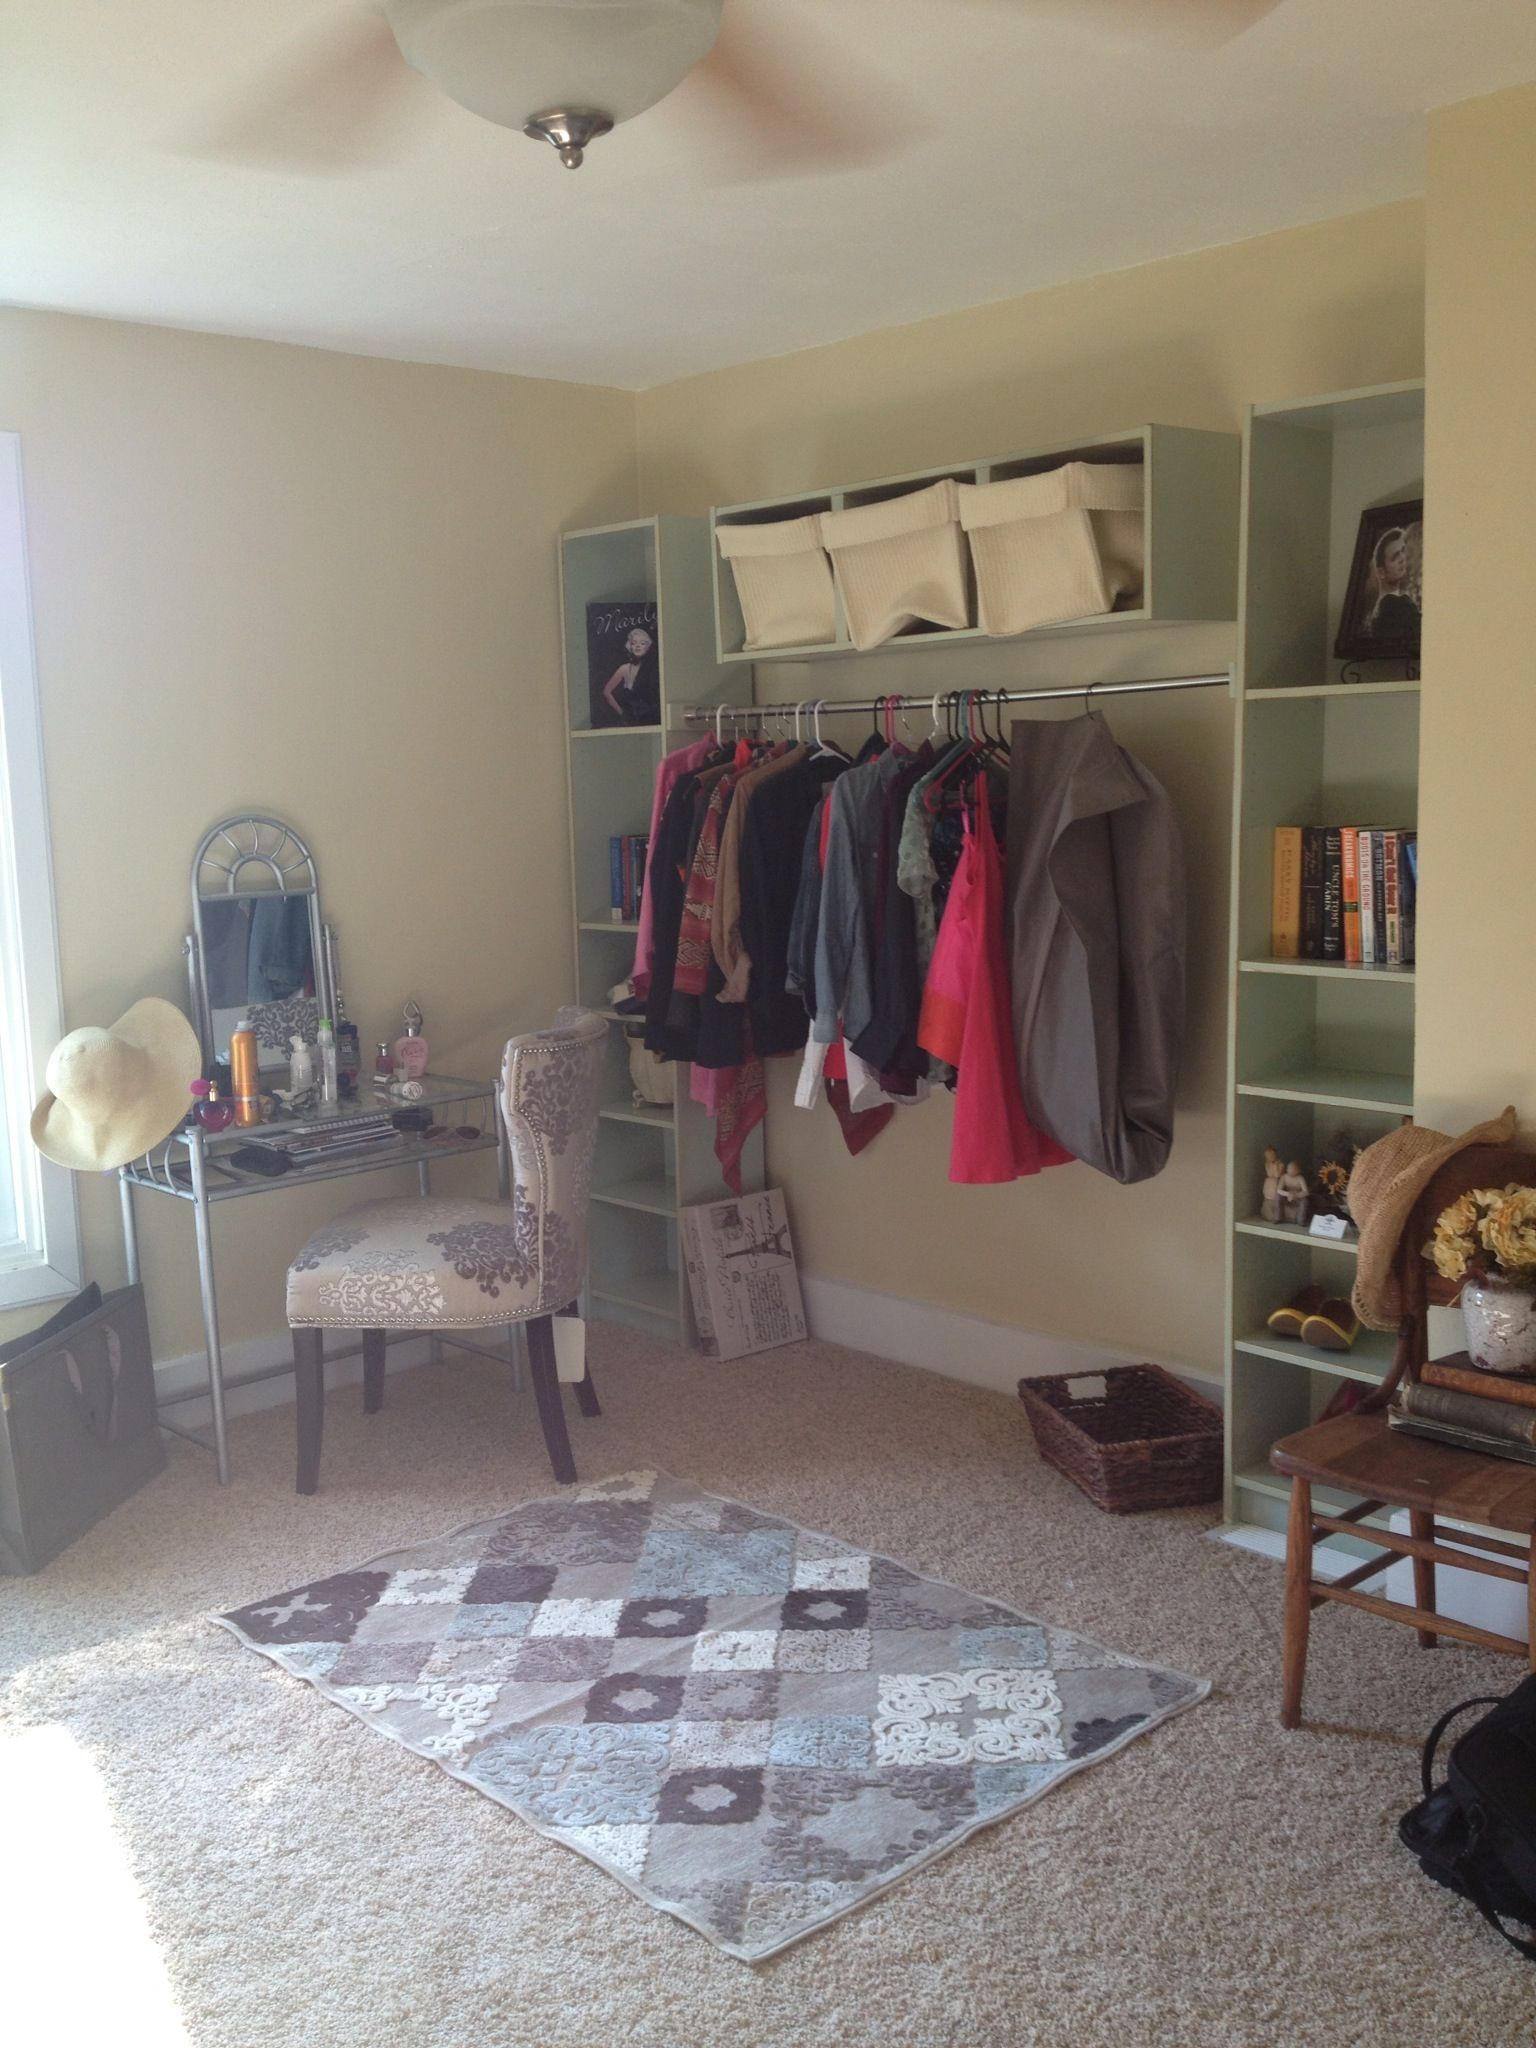 How to arrange a very small living room exposed closet with bookcases from ikea  organizing ideas